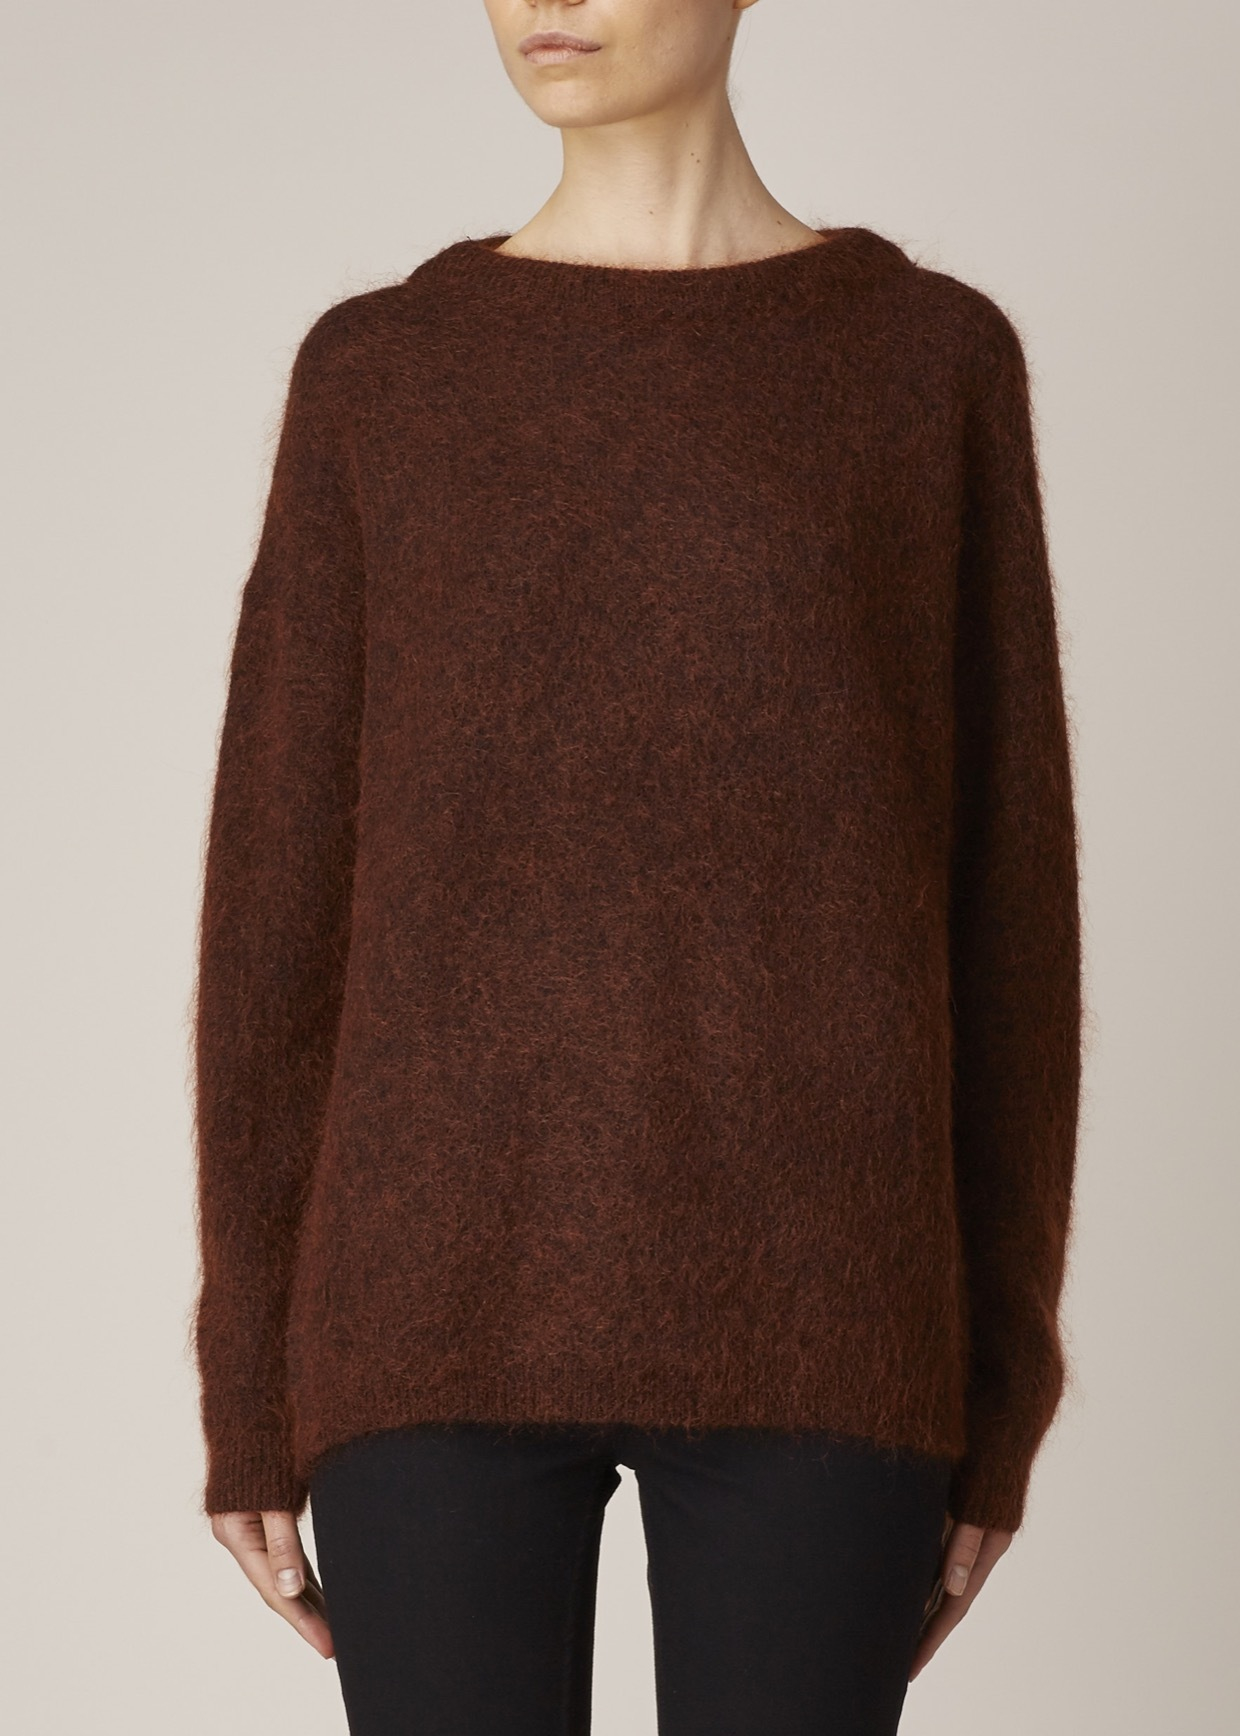 acne studios rust brown dramatic mohair pullover in brown lyst. Black Bedroom Furniture Sets. Home Design Ideas